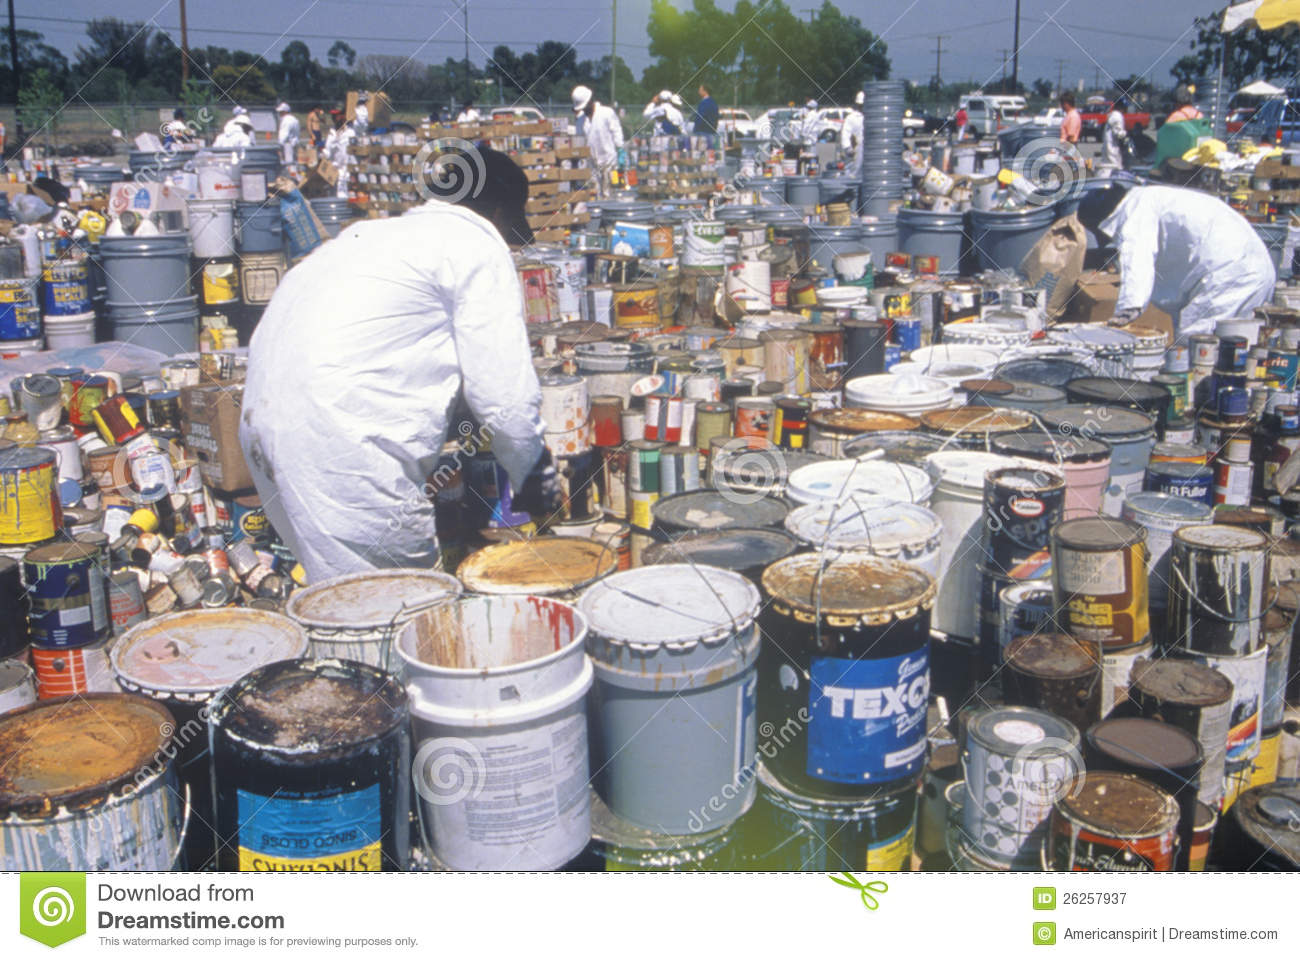 Workers handling toxic household wastes